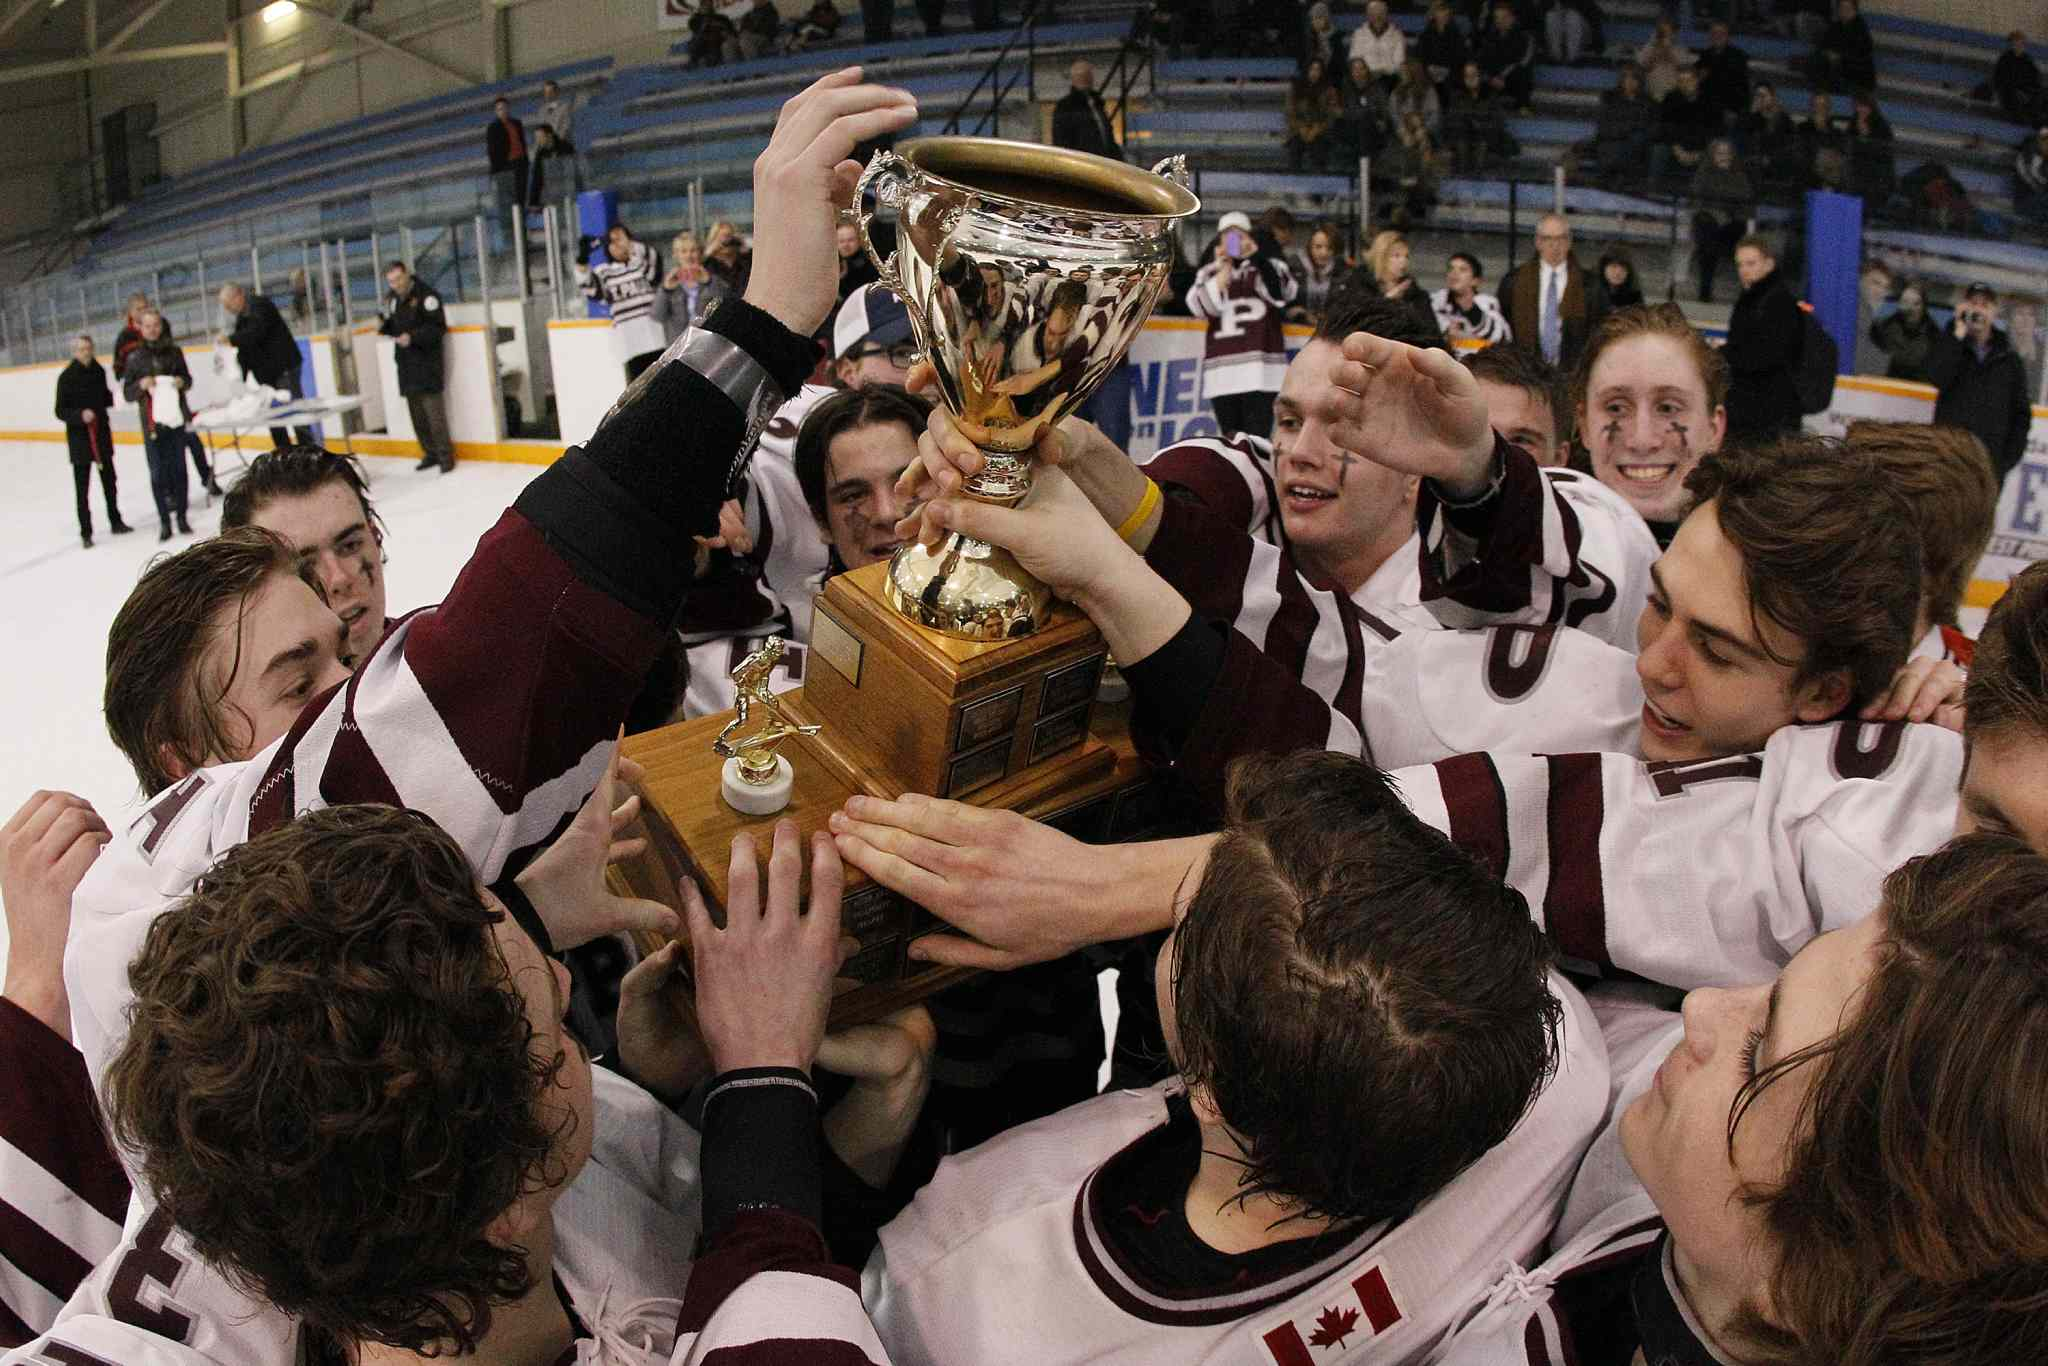 St. Paul's Crusaders players celebrate a 4-1 win over the River East Kodiaks in the AAAA Provincial High School Hockey Championship at St. James Civic Centre Monday night.